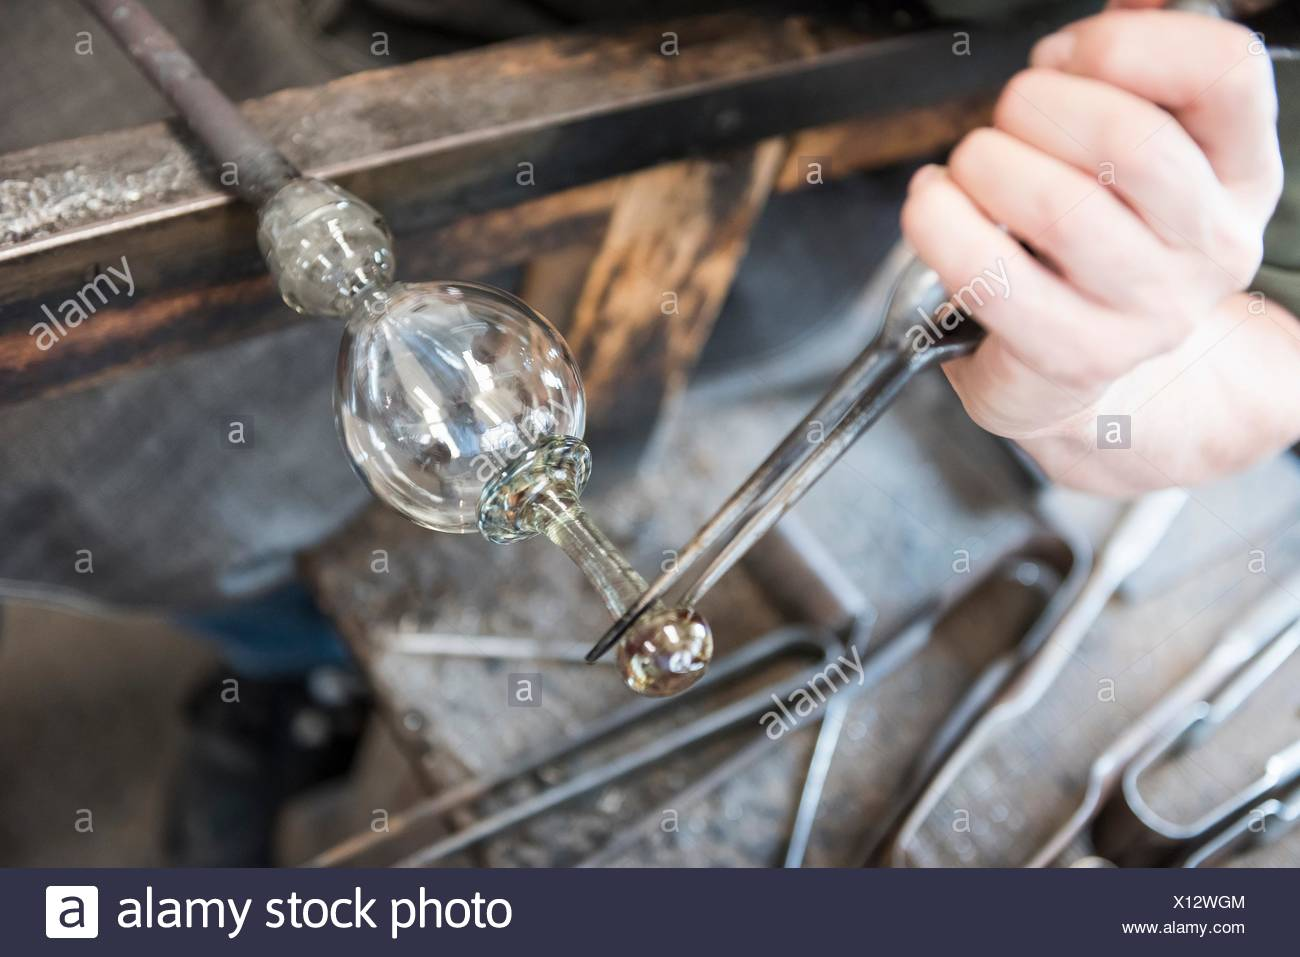 Glassblower forming hot glass object, close up - Stock Image